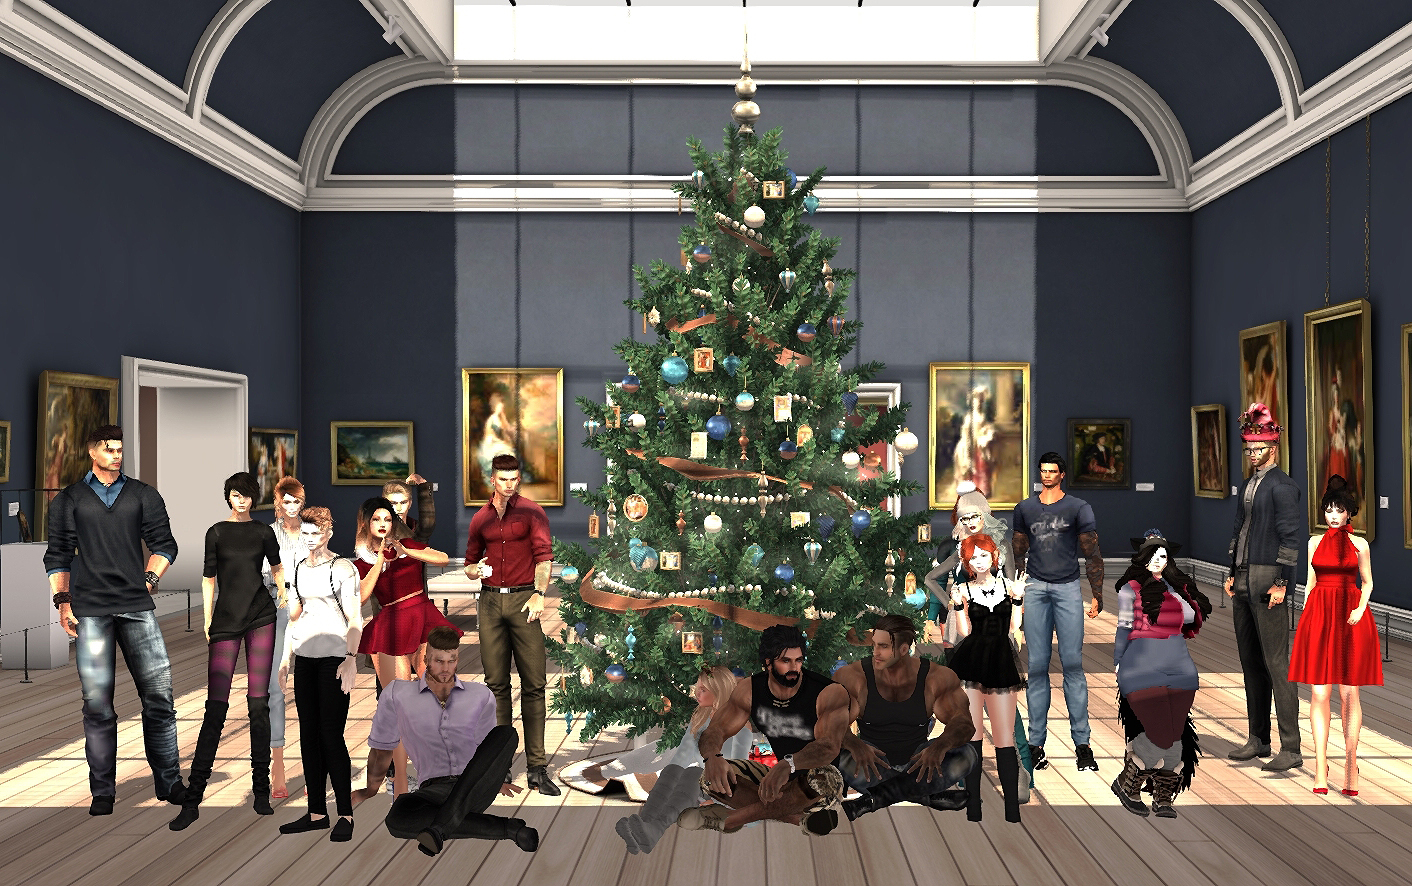 A group photo at the end of the even with the fully-decorated Christmas tree.